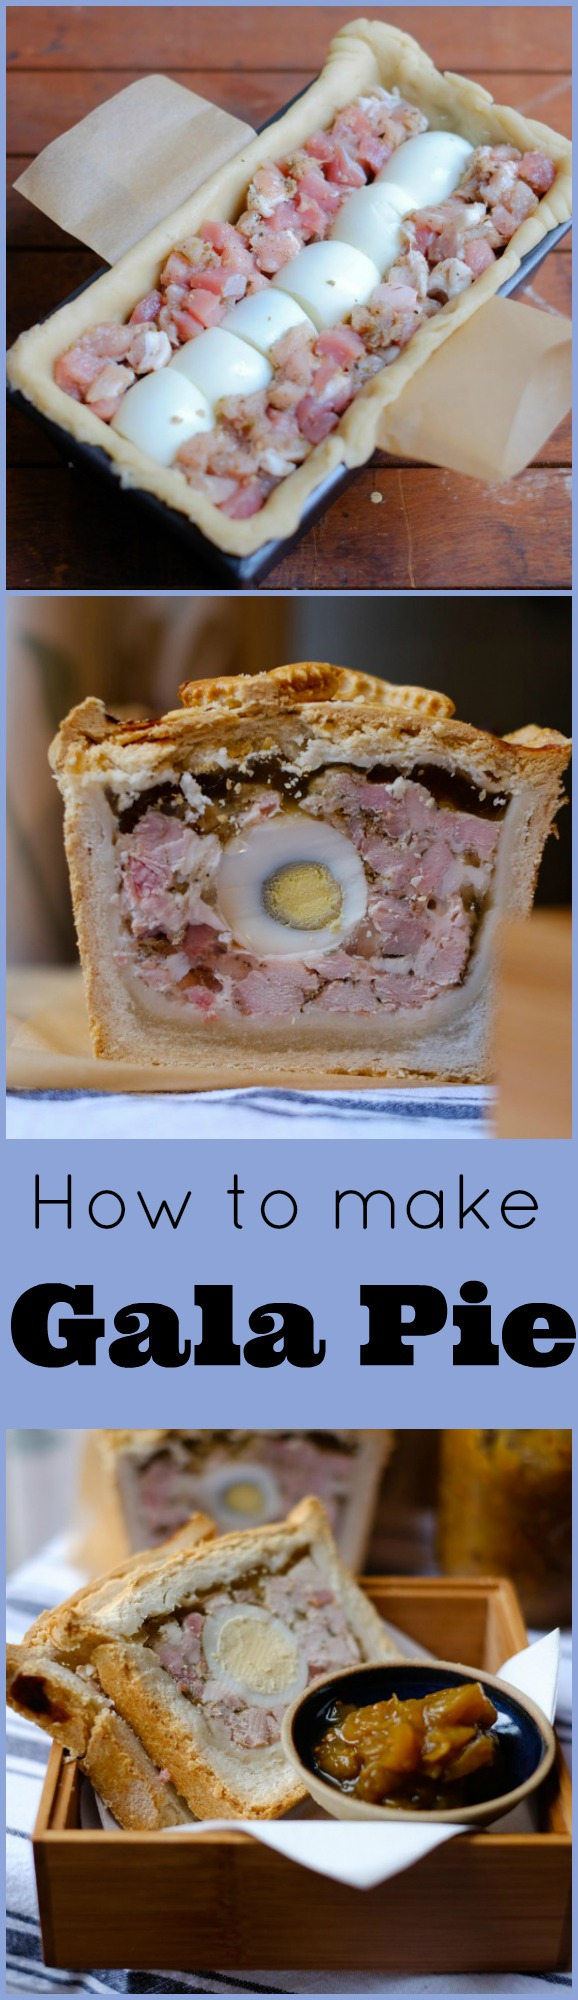 How to make gala pie | Patisserie Makes Perfect